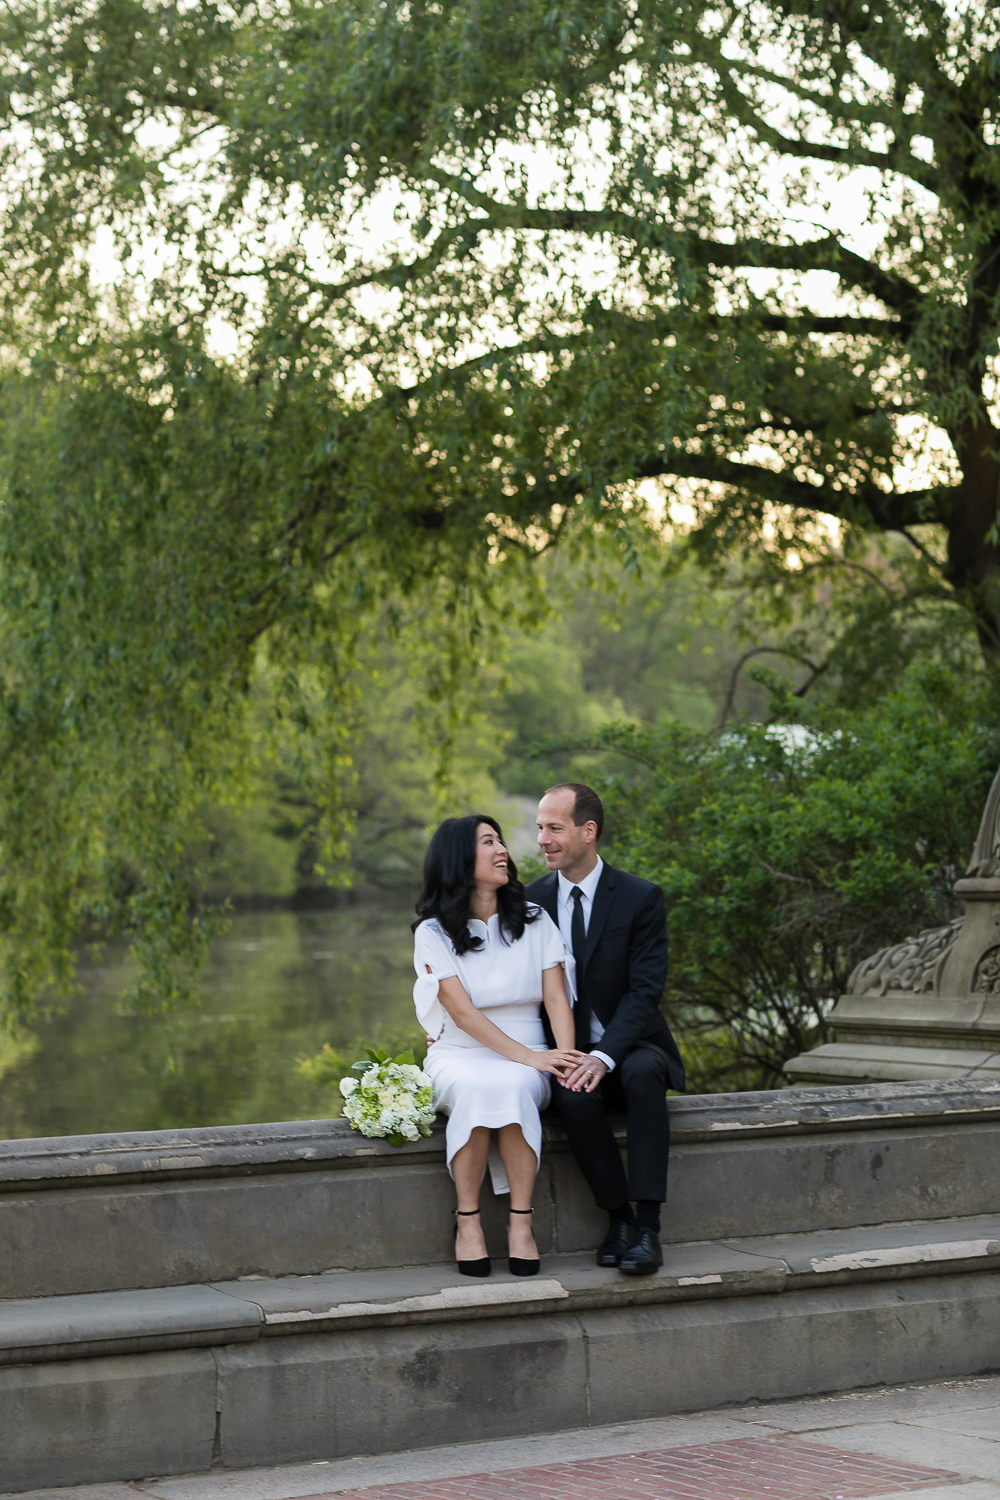 Bride and groom taking wedding photos with weeping willows in Central Park. | Early Morning Sunrise Central Park Elopement in New York City.